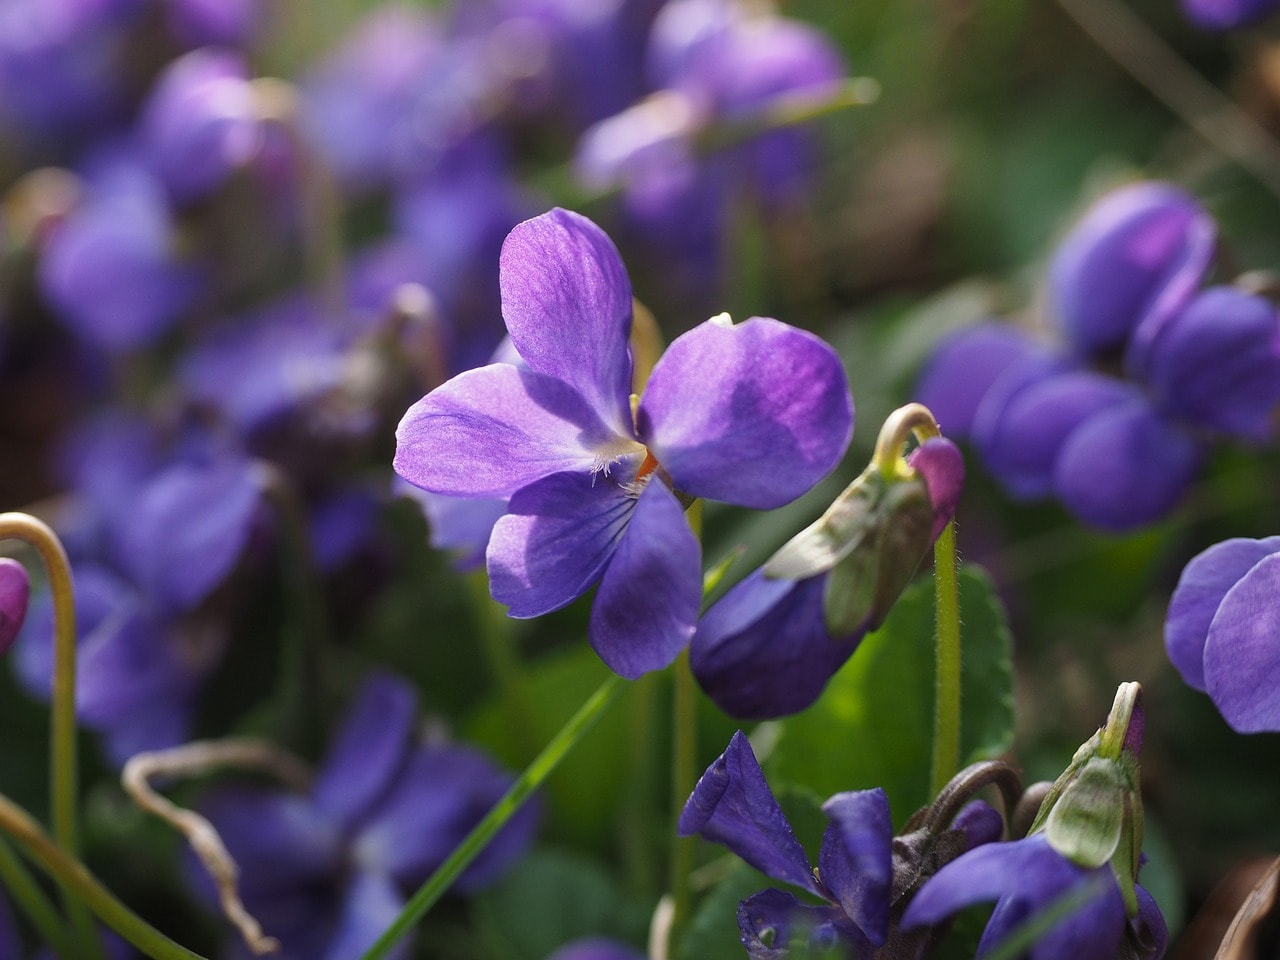 thehandymano mano mano edible flowers sweet violet